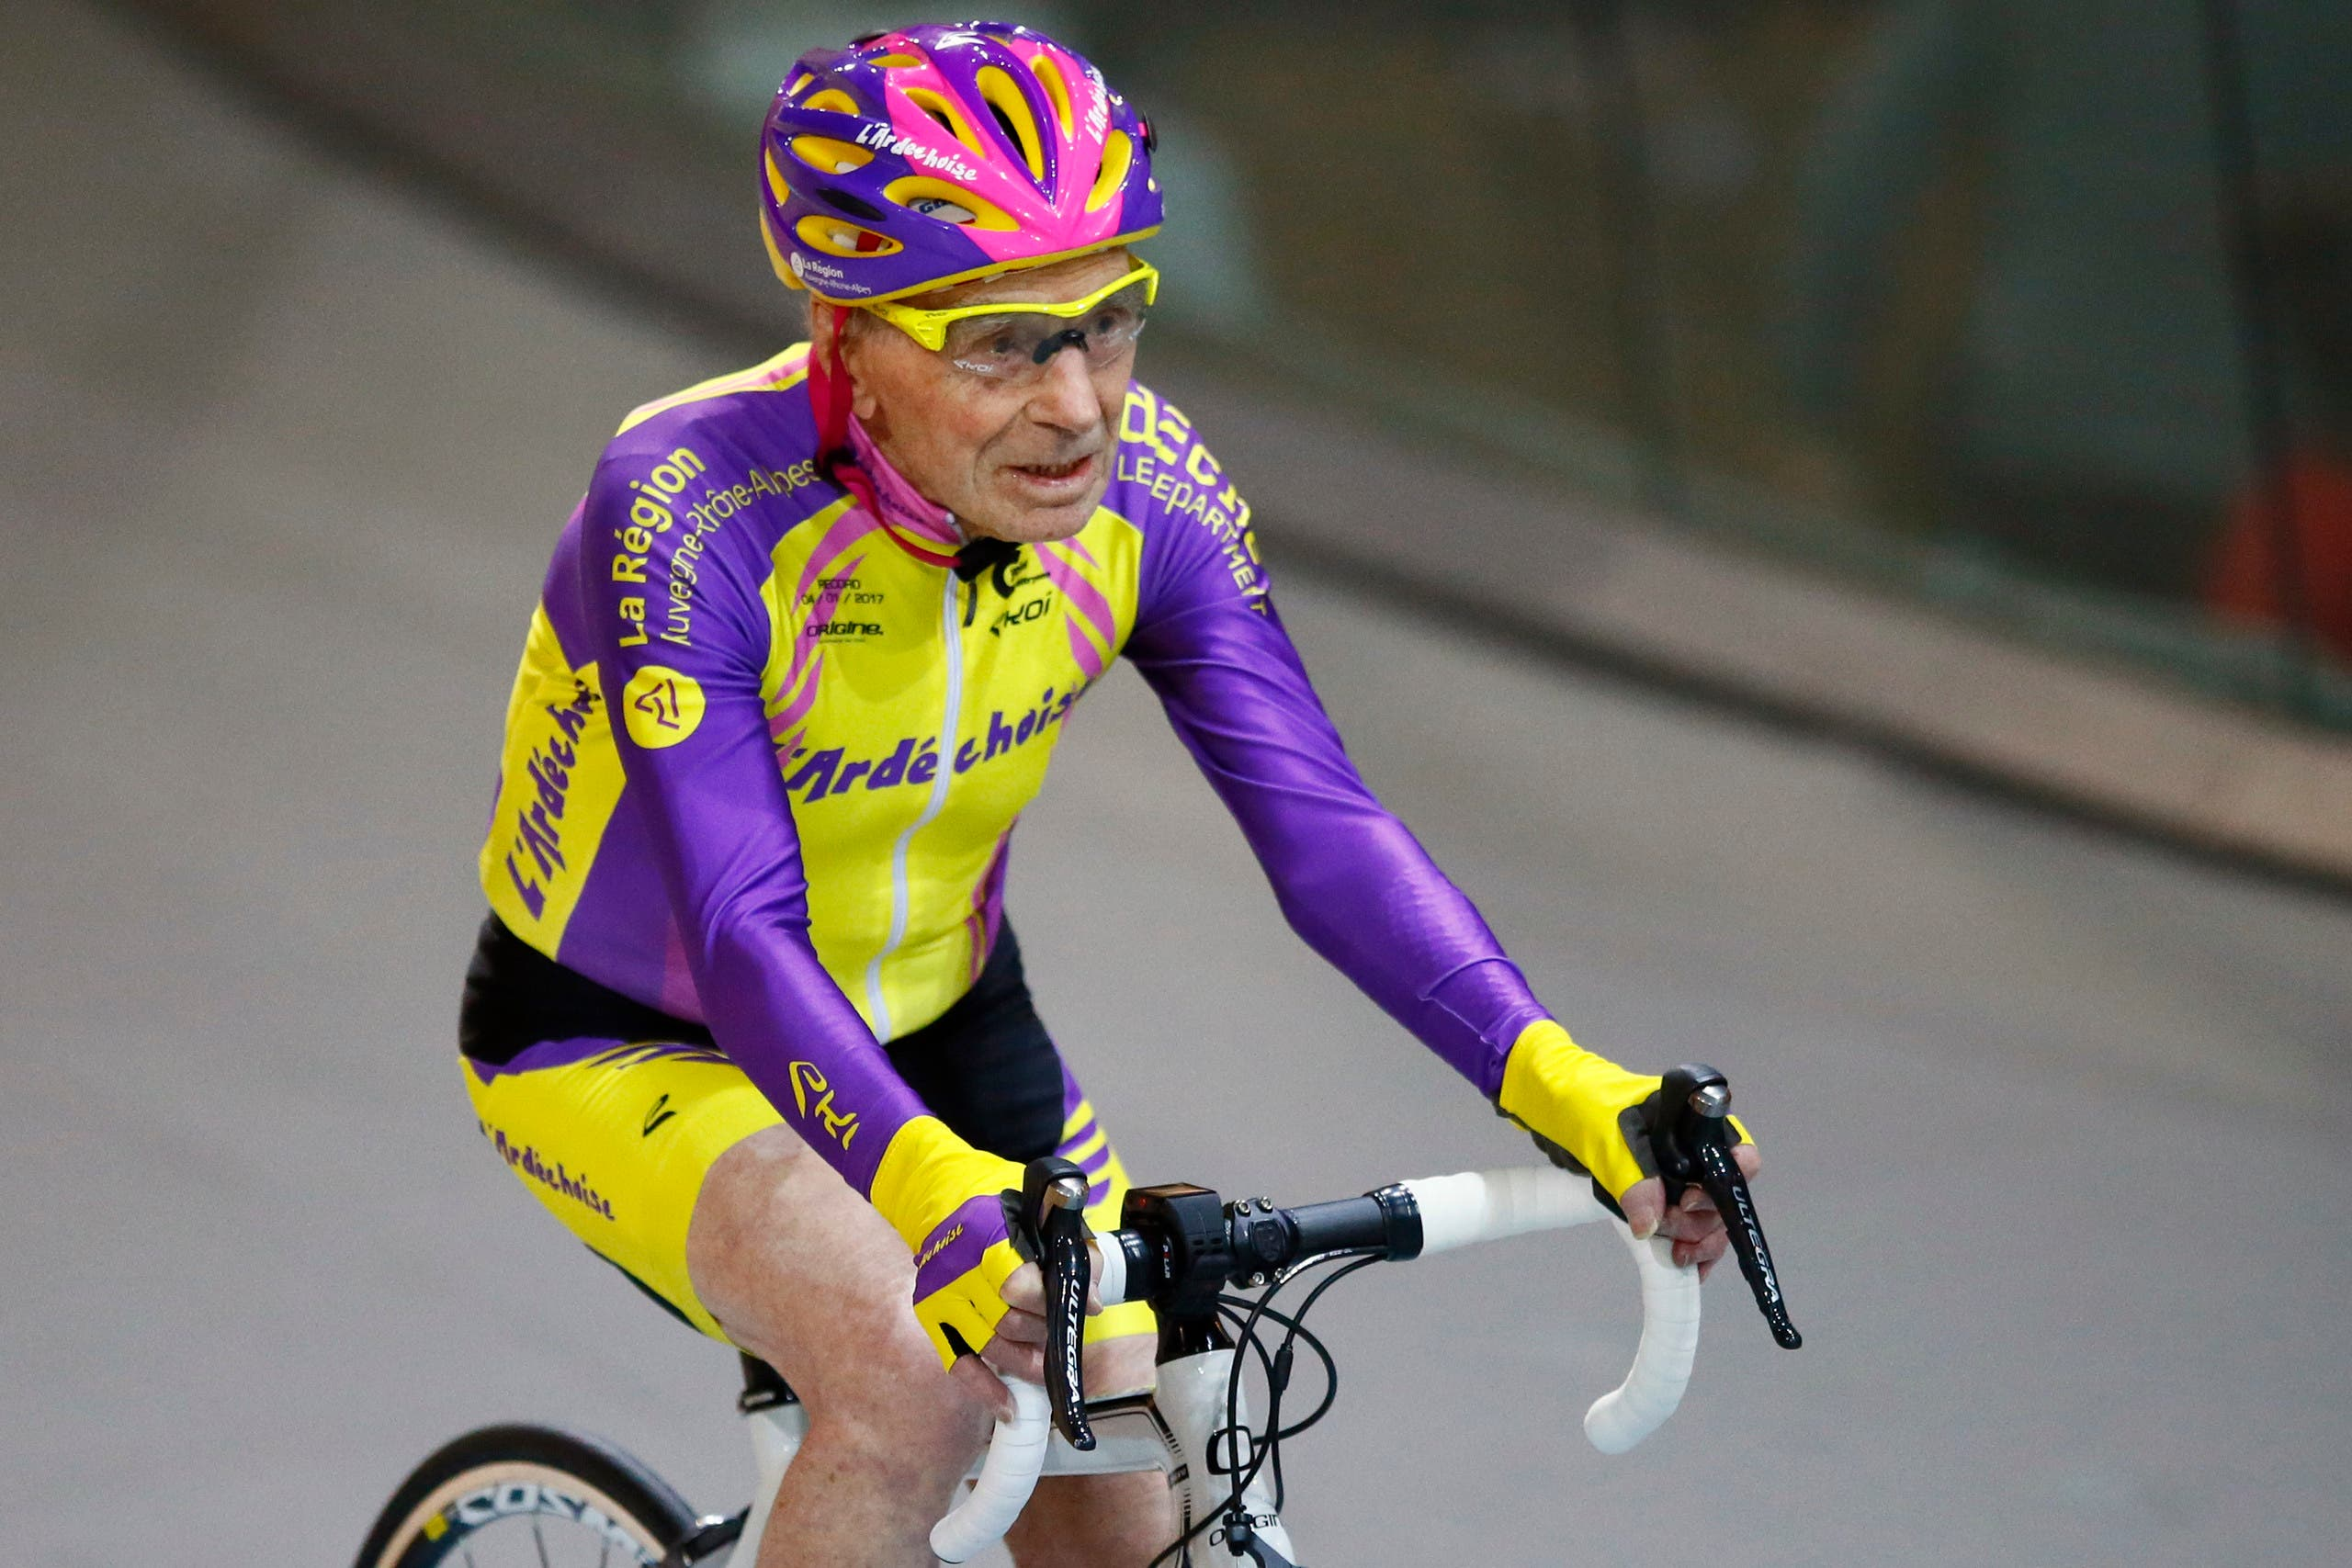 French cyclist Robert Marchand, aged 105, finishes after setting a record for distance cycled in one hour, at the velodrome of Saint-Quentin en Yvelines, outside Paris, Wednesday, Jan. 4, 2017. (AP)